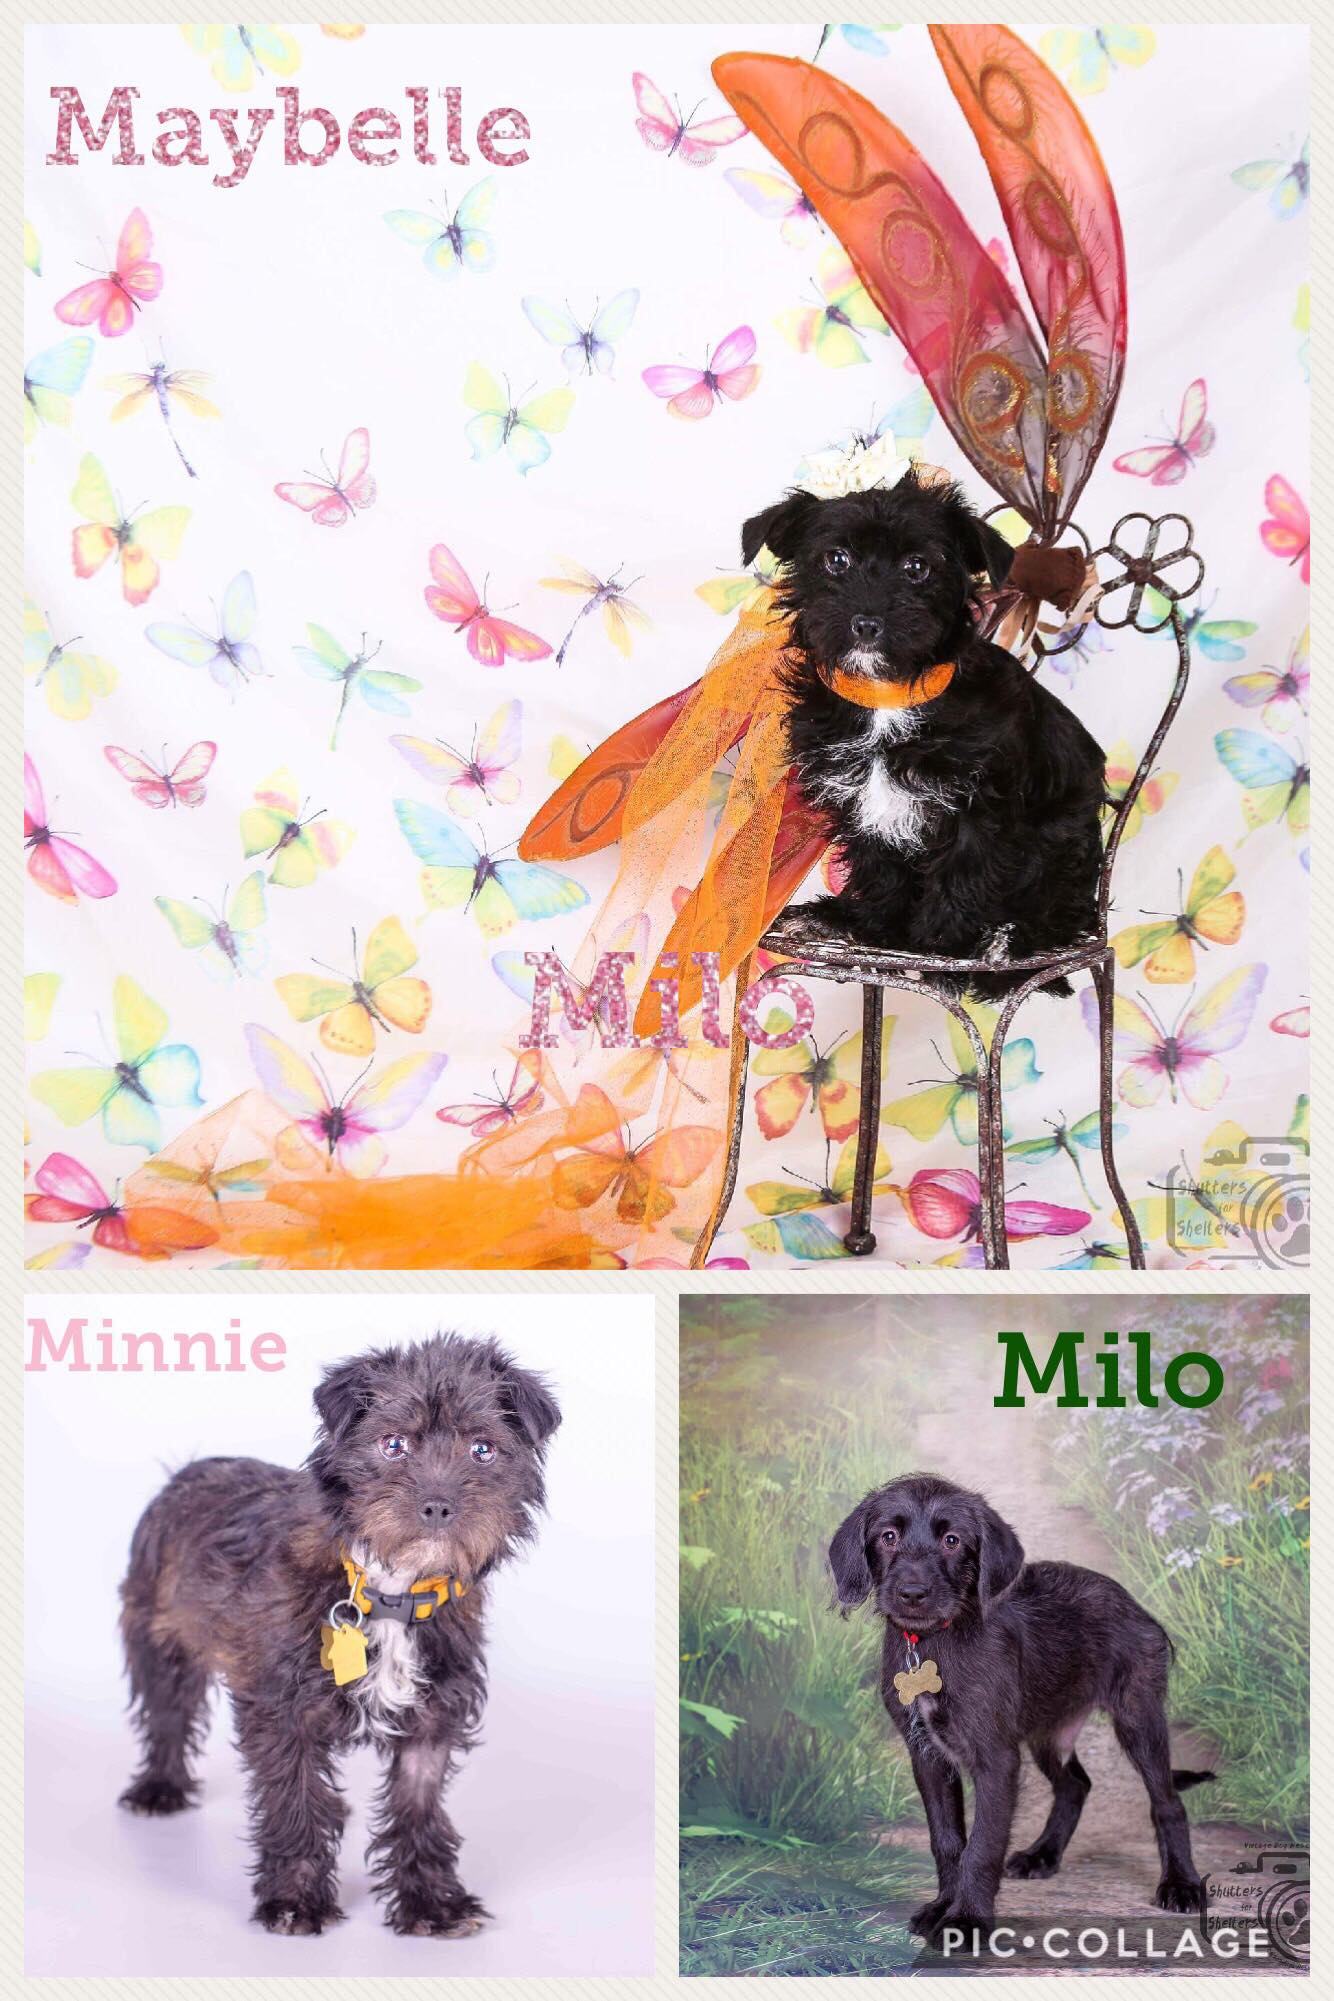 Adopt a puppy! Maybelle, Minnie, and Milo are available :)